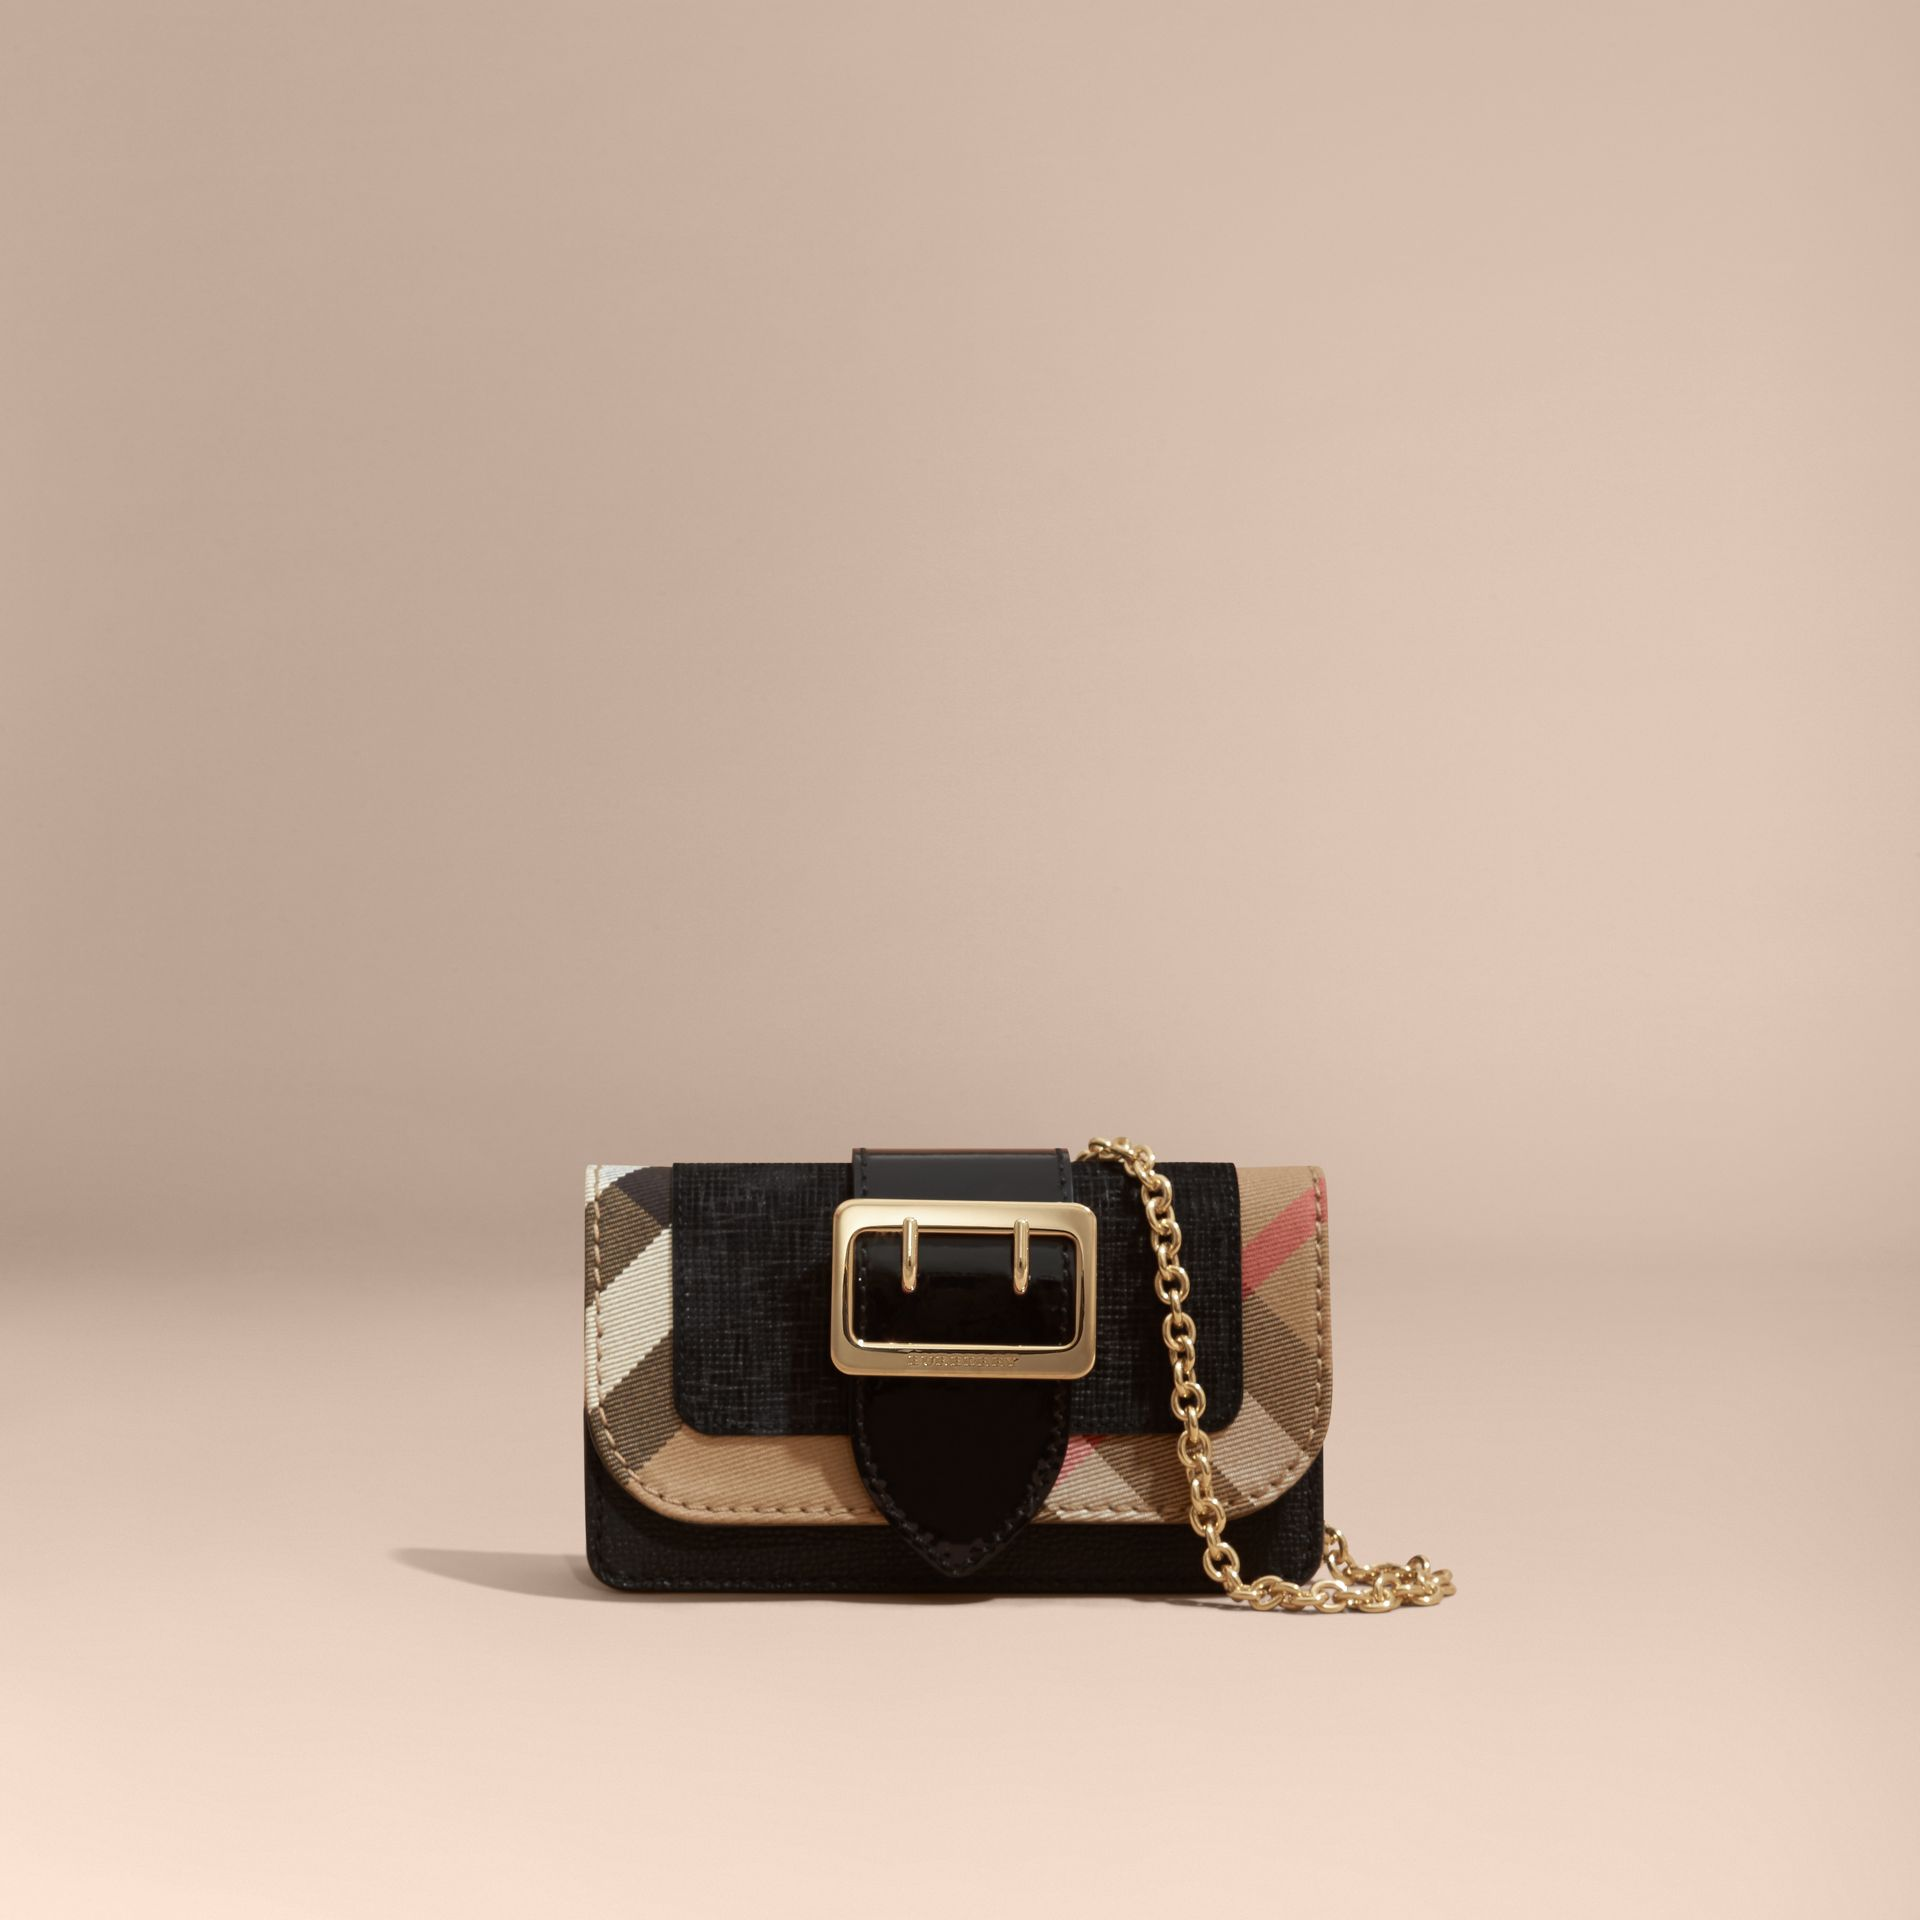 The Mini Buckle Bag in Leather and House Check in Black - Women | Burberry Australia - gallery image 9